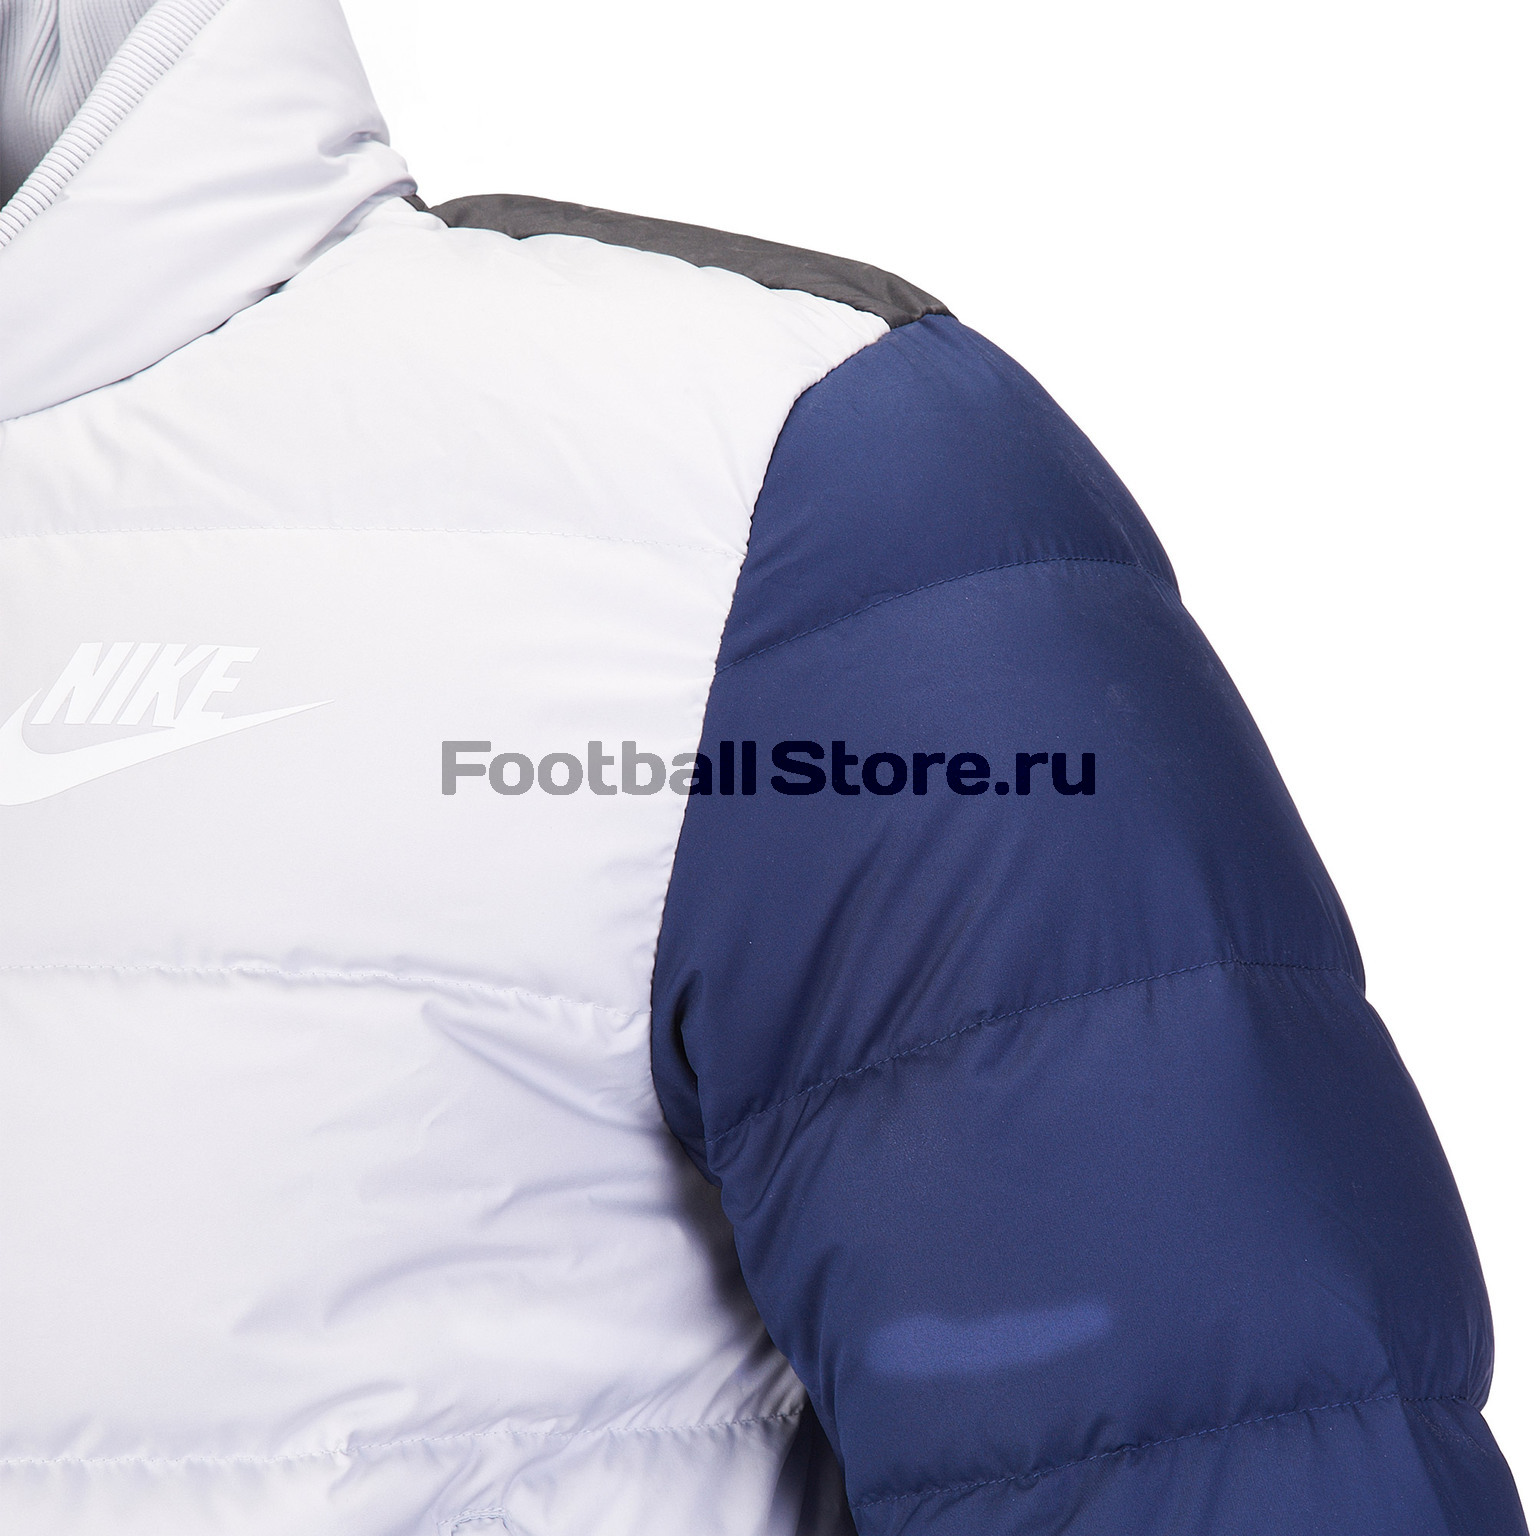 3d2cccf8 ... Куртка Nike M NSW Down Fill Bomder 928819-043. О ТОВАРЕ; РАСЧЕТ ДОСТАВКИ